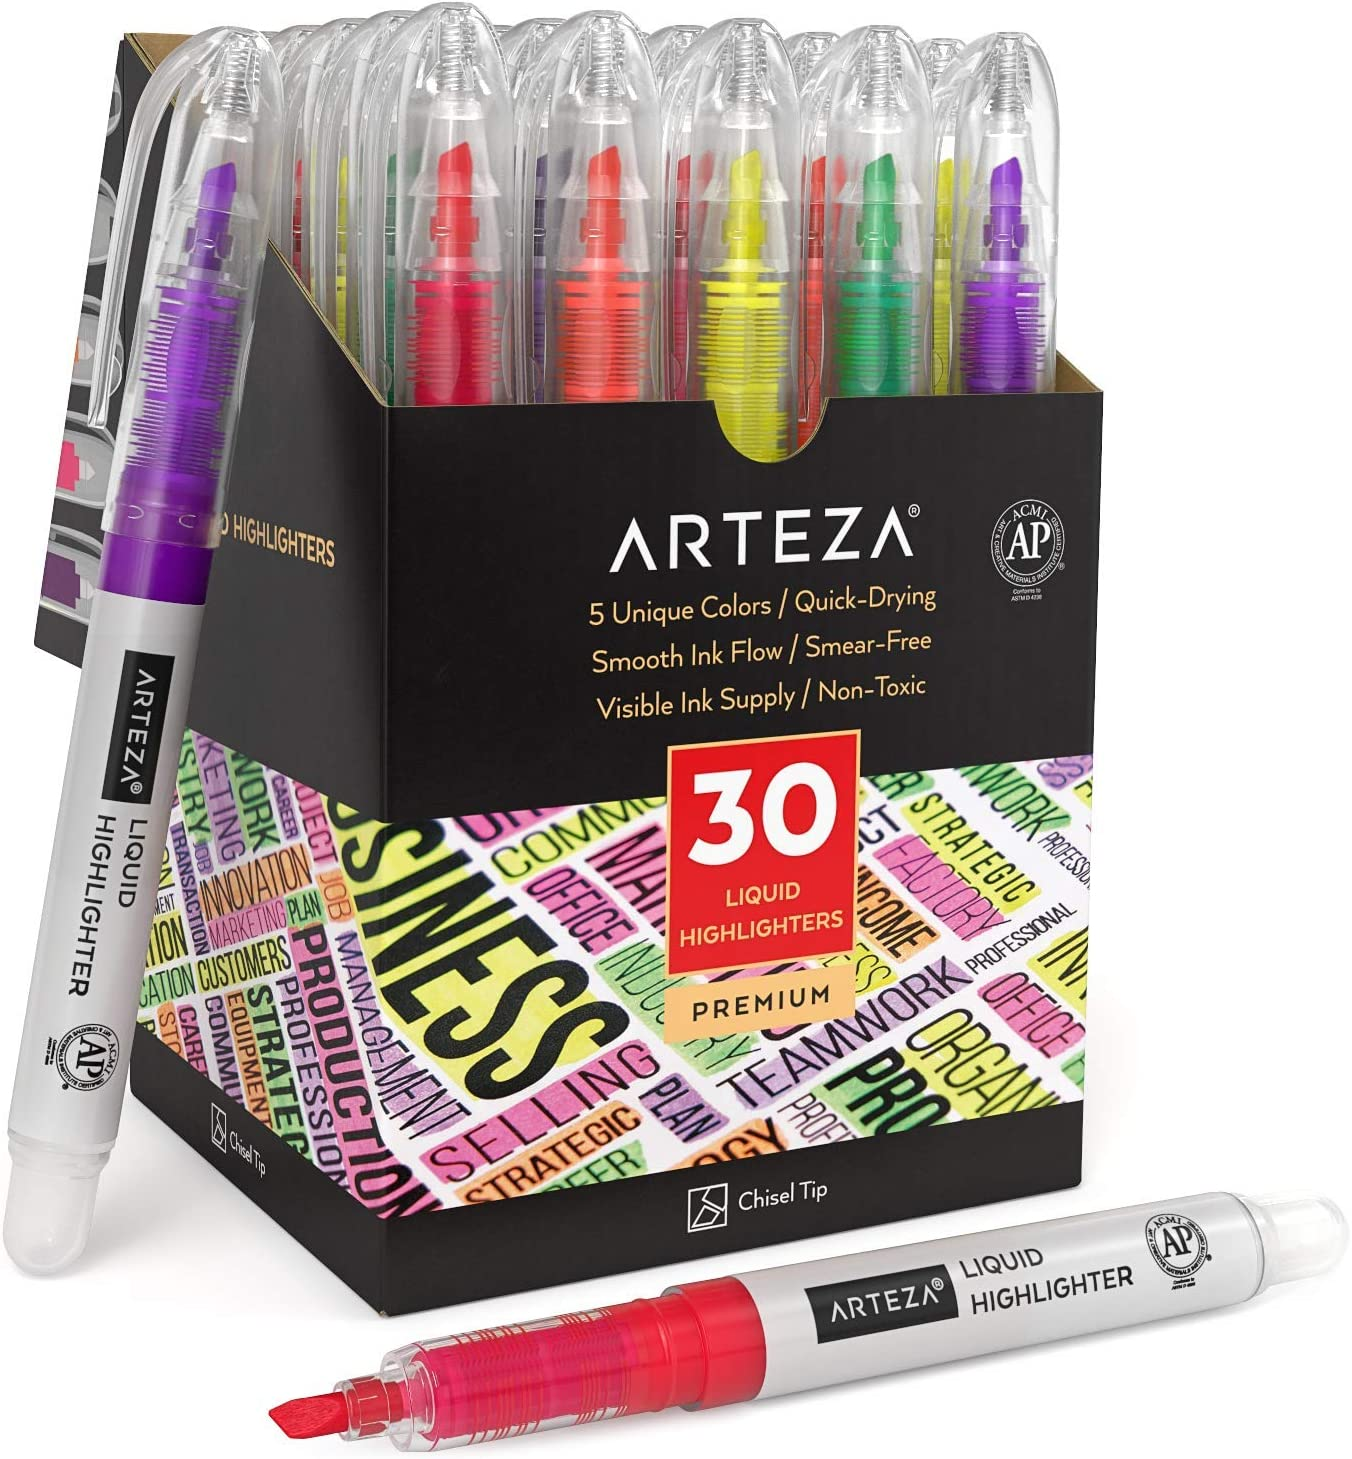 Arteza Liquid Highlighter Pens, Set of 30, Narrow Chisel Tip, Bulk Pack of Highlighters in 5 Assorted Colors, Use in Bullet Journal, Notes, or Books